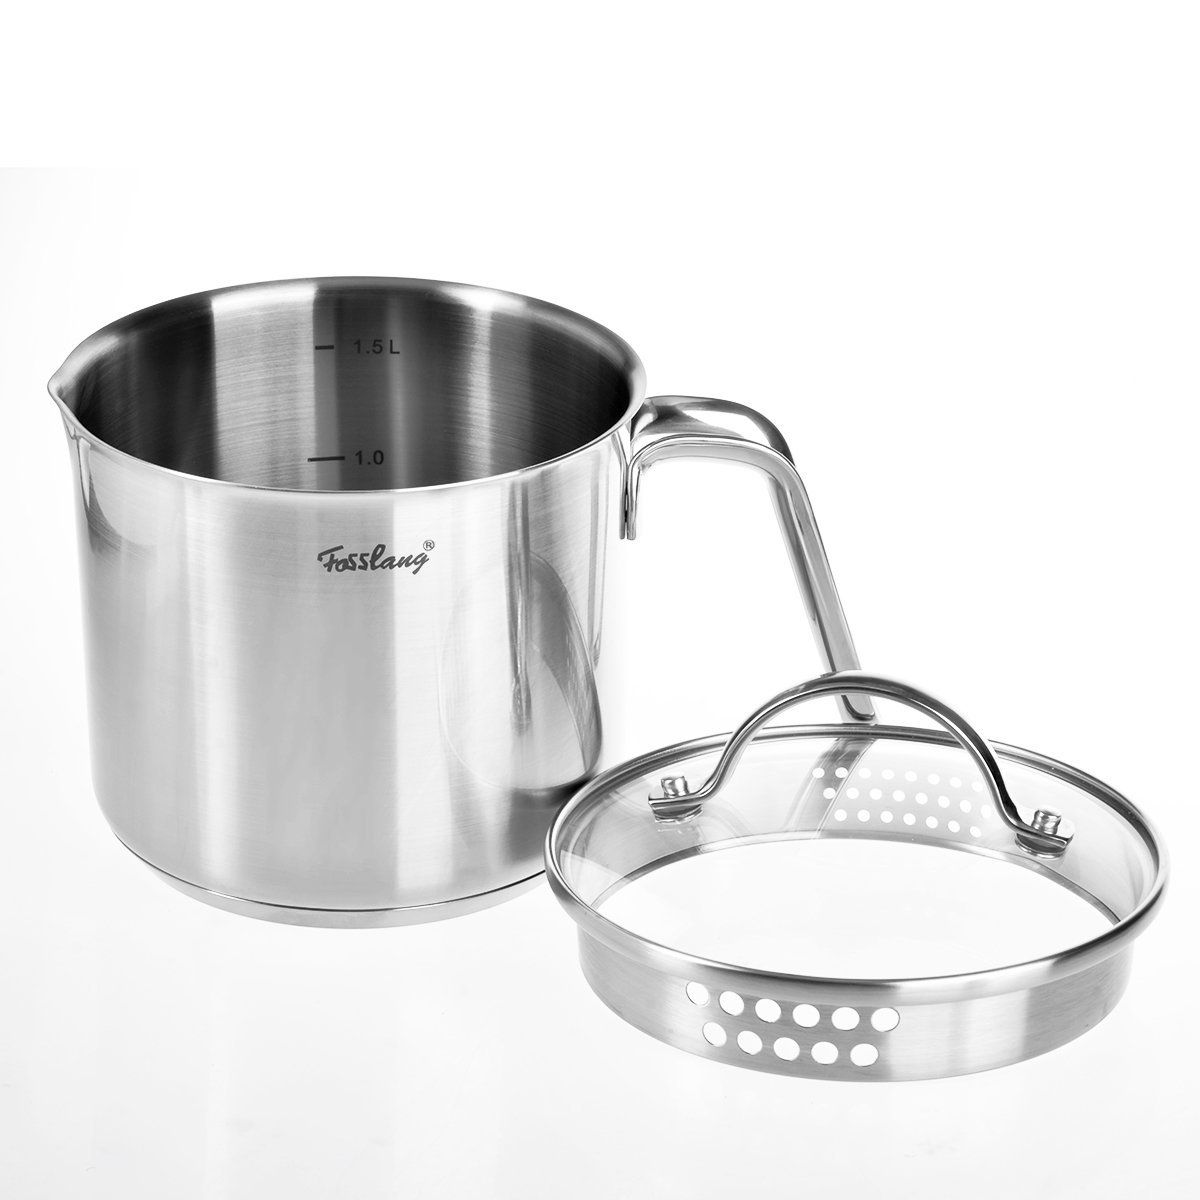 Fosslang 112quart stainless steel saucepan with cover